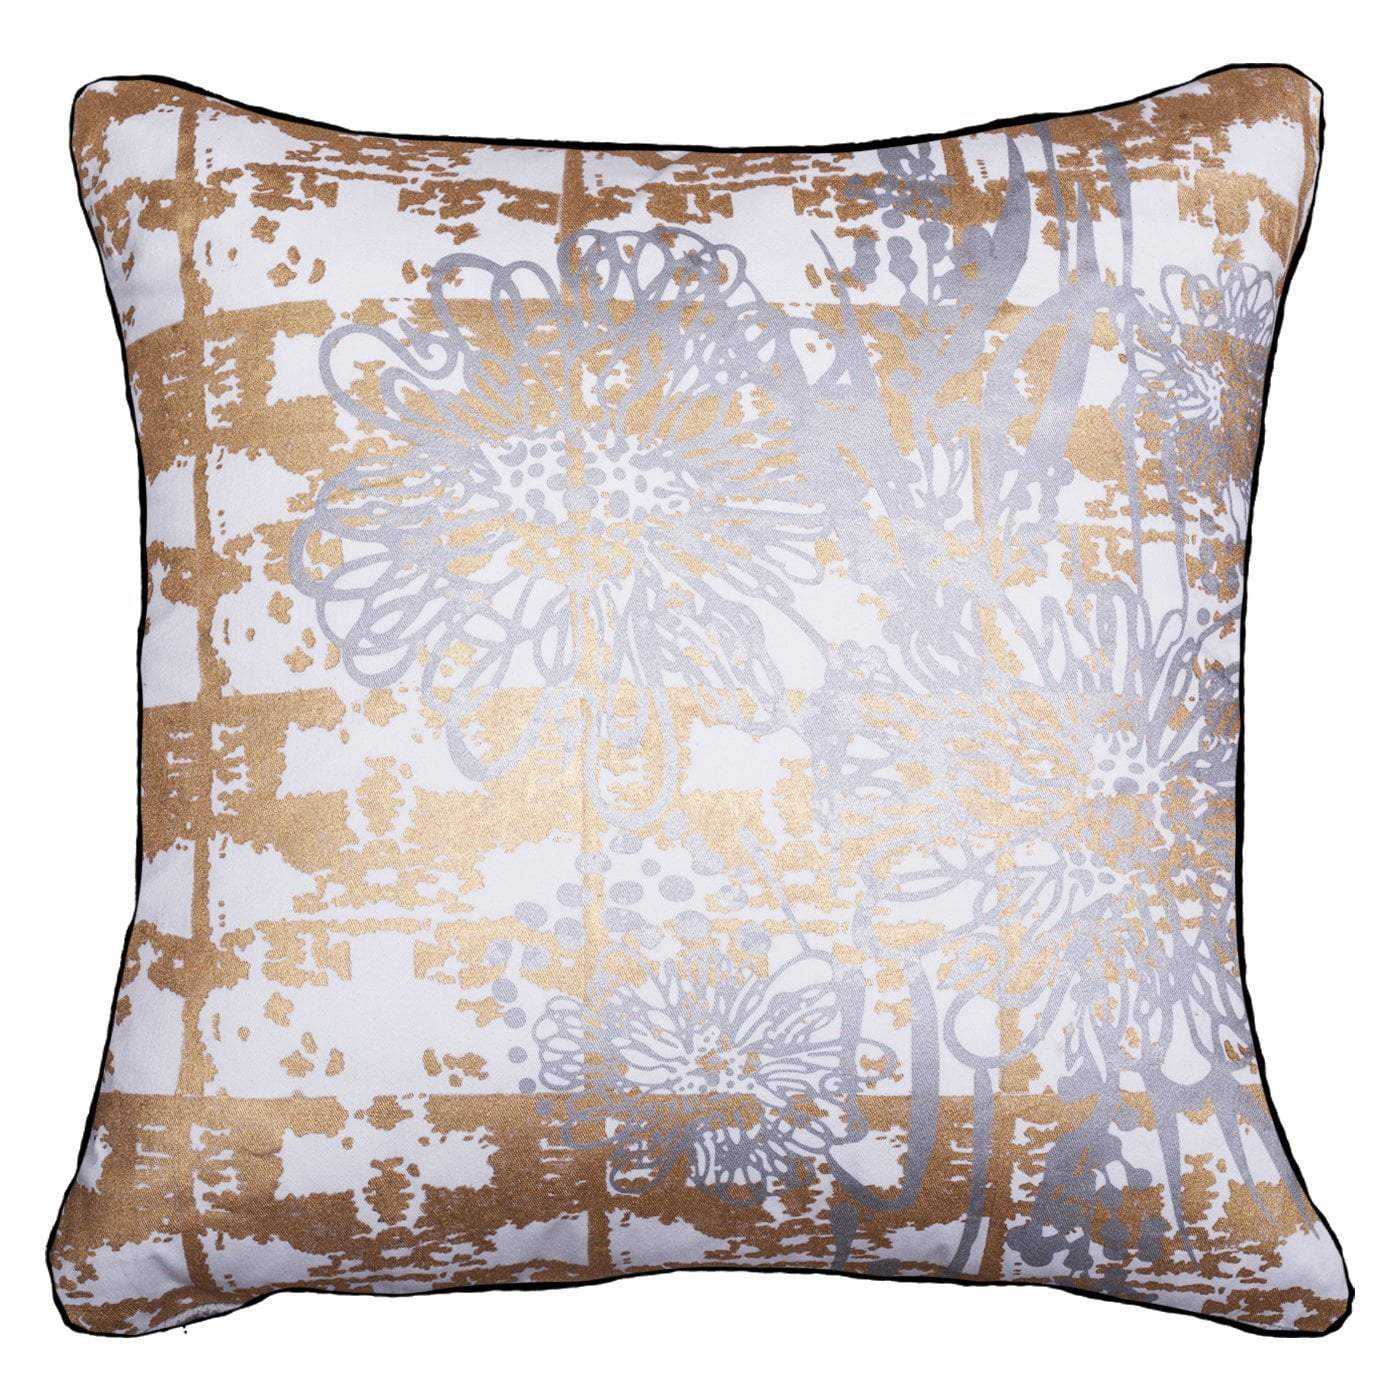 Bandhini Homewear Design Lounge Cushion Gold / 22 x 22 Grevilla Gold Silver Lounge Cushion 55 x 55 cm